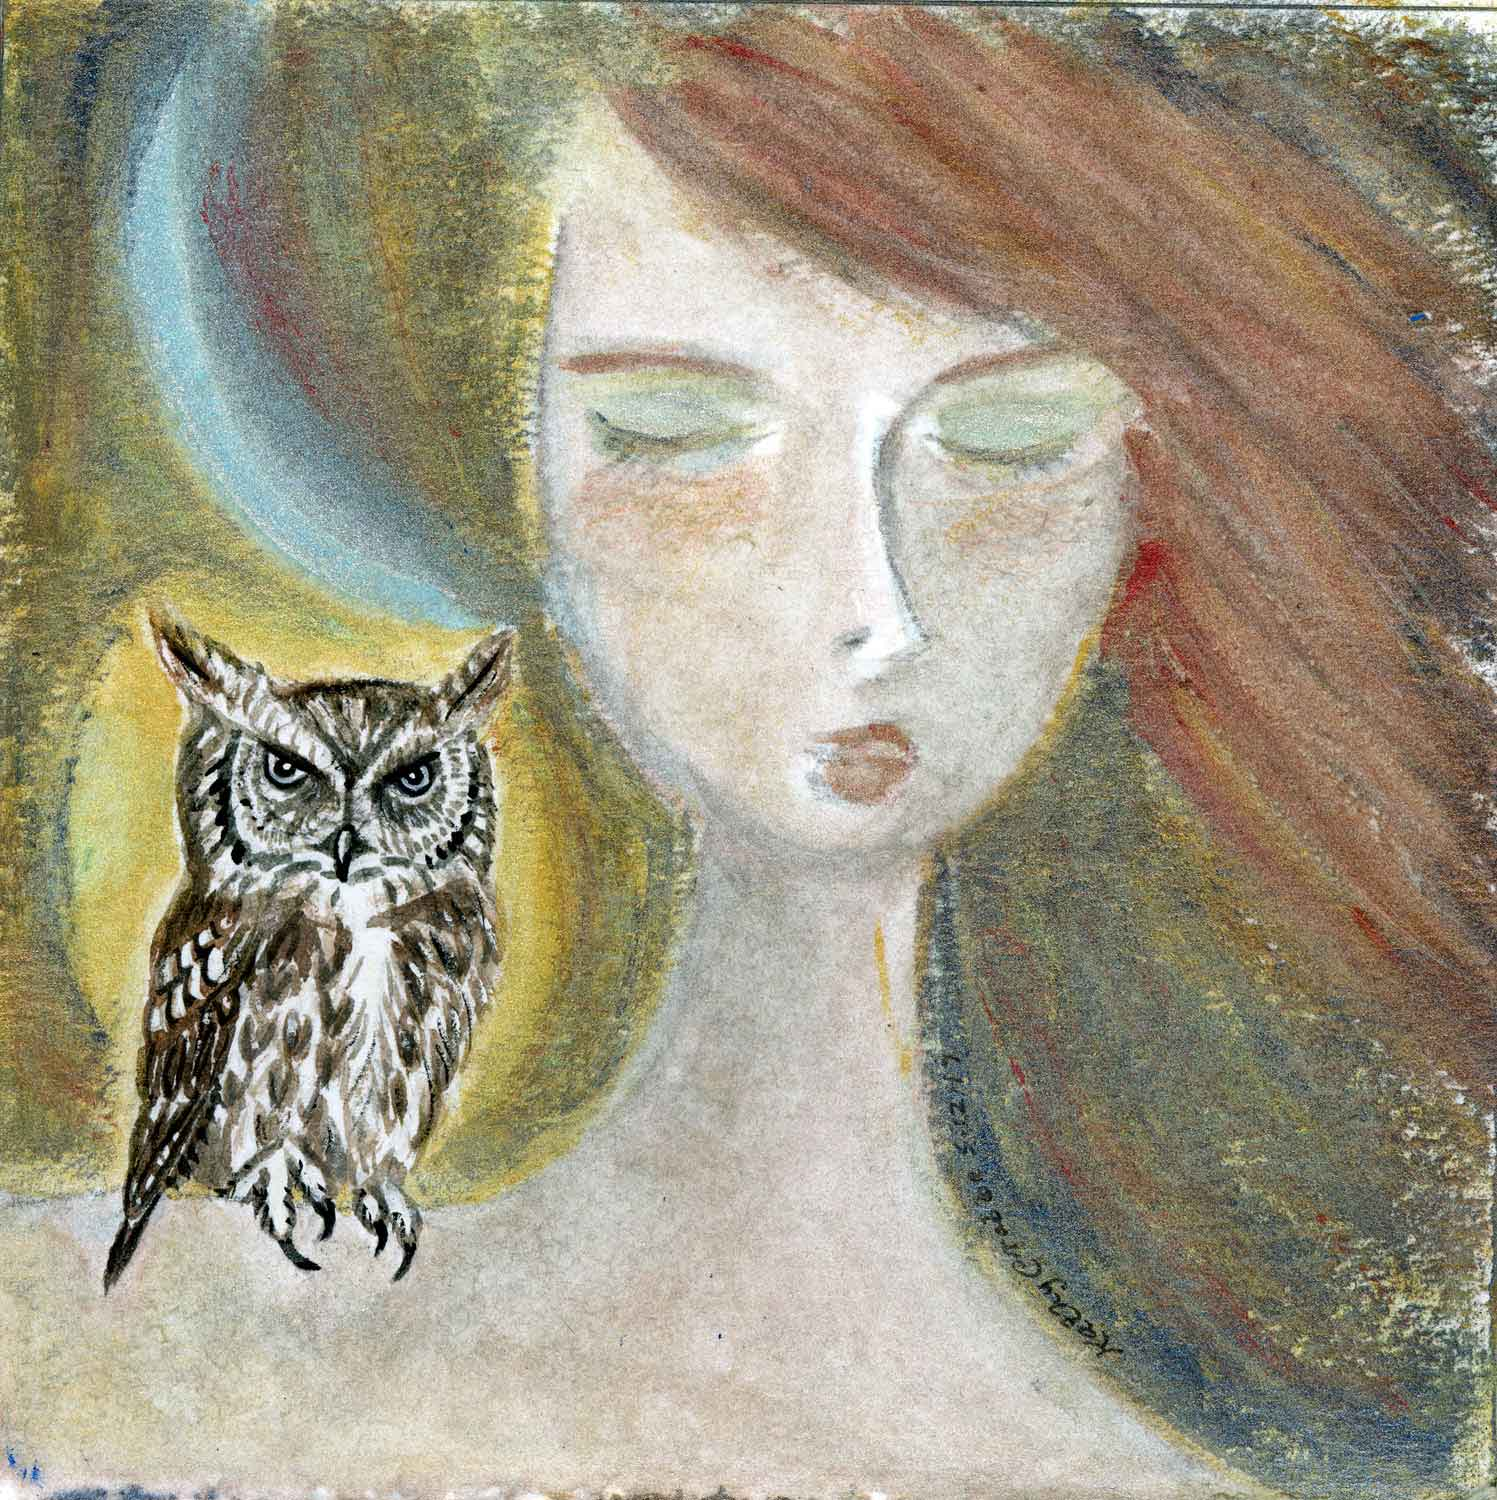 Owl-Magic by Kathy Crabbe